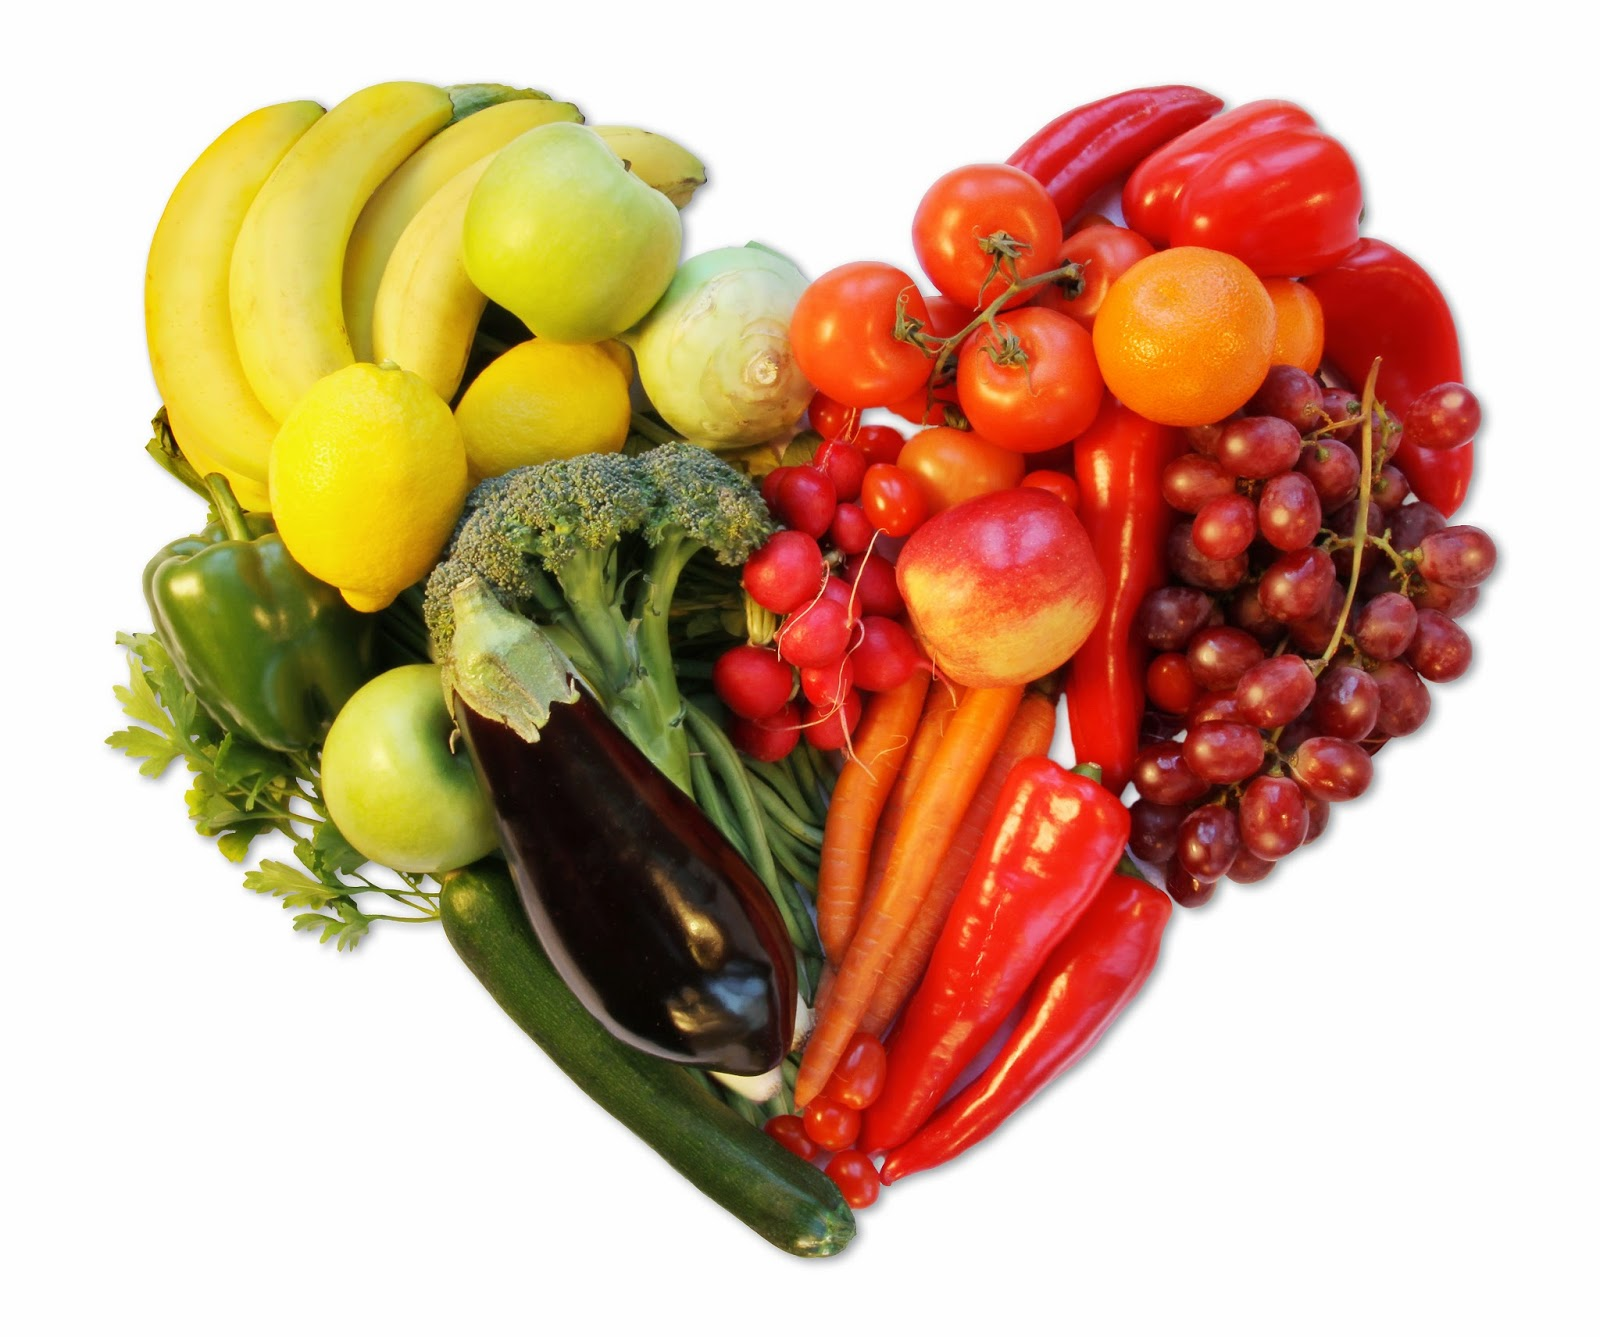 Diet Health: Healthy Plate 5: Healthy Heart